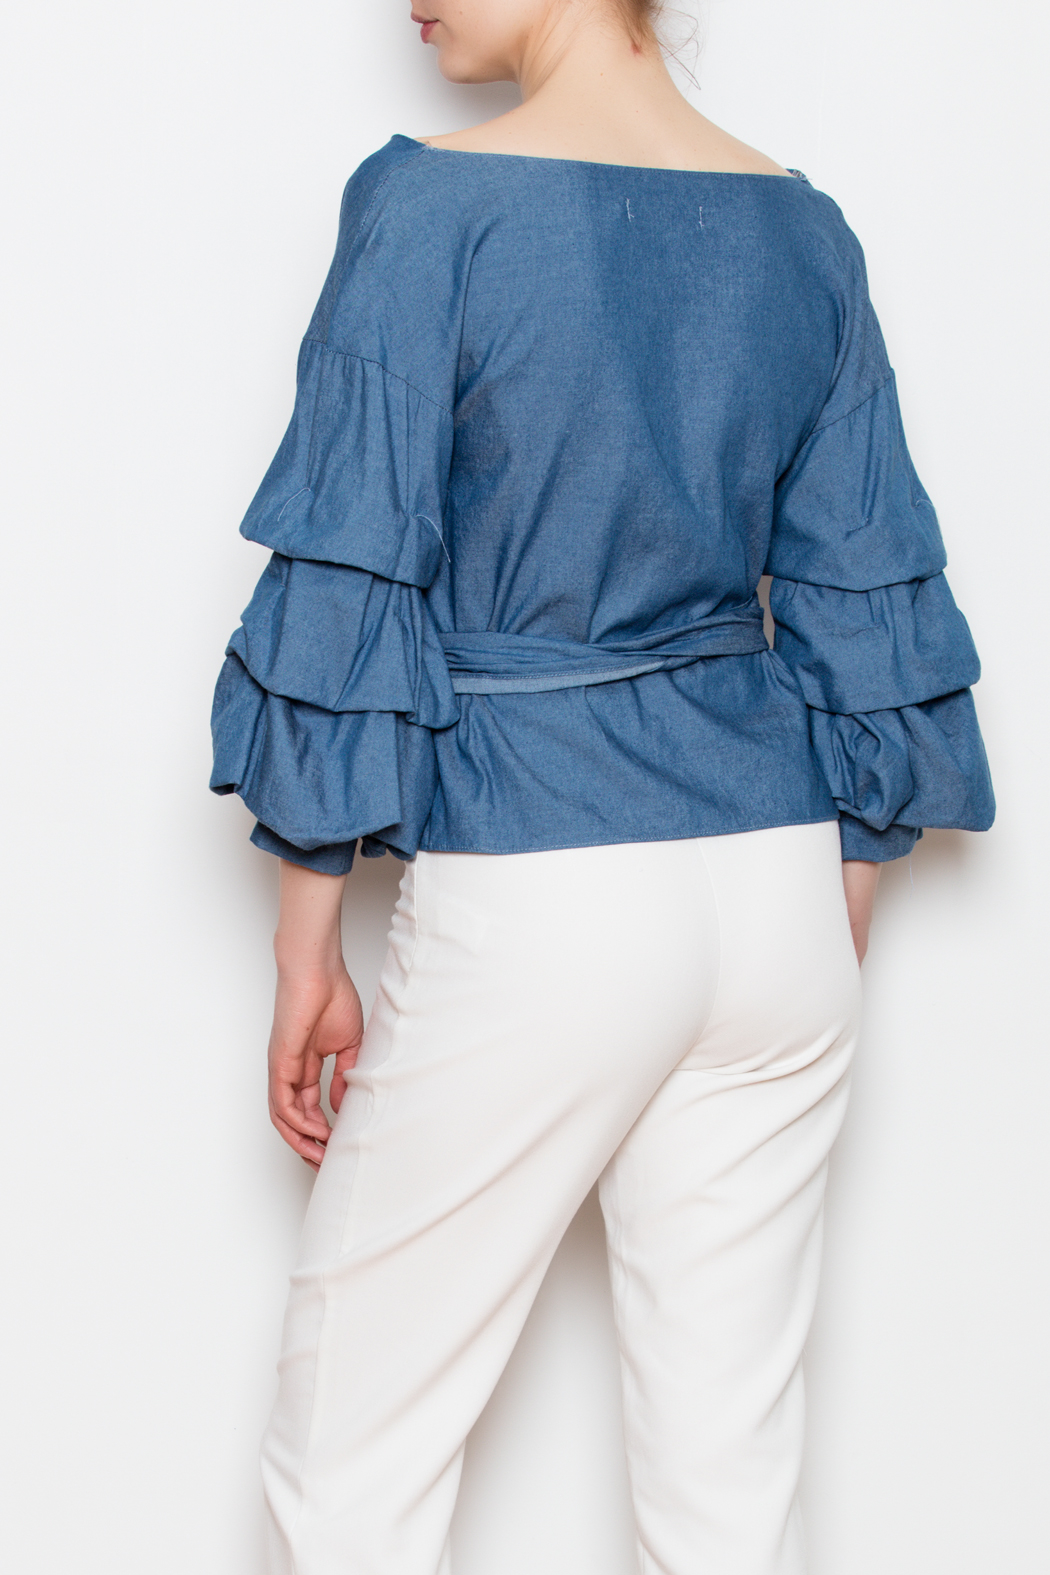 Do & Be Bubble Sleeve Top - Back Cropped Image